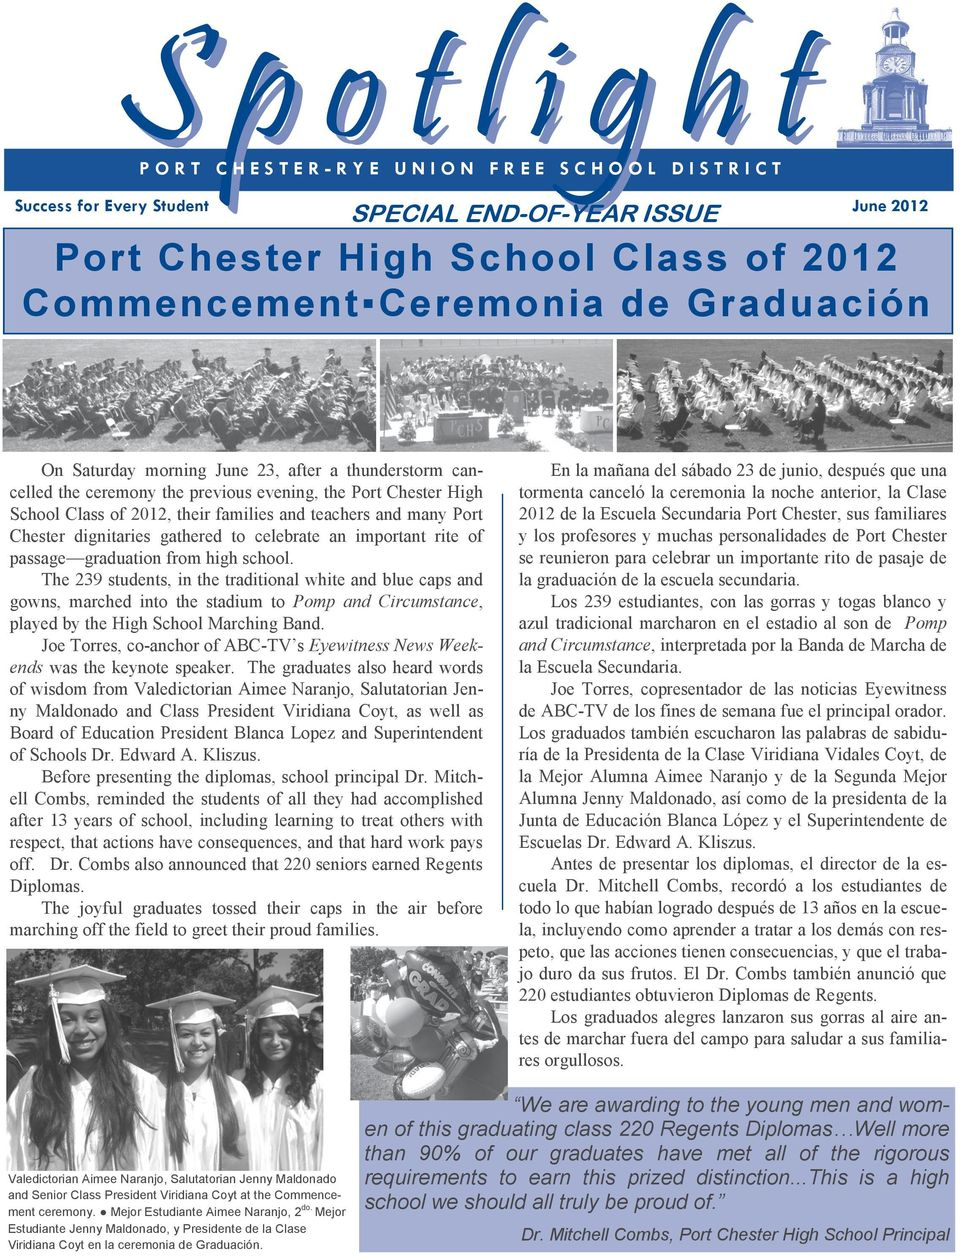 teachers and many Port Chester dignitaries gathered to celebrate an important rite of passage graduation from high school.